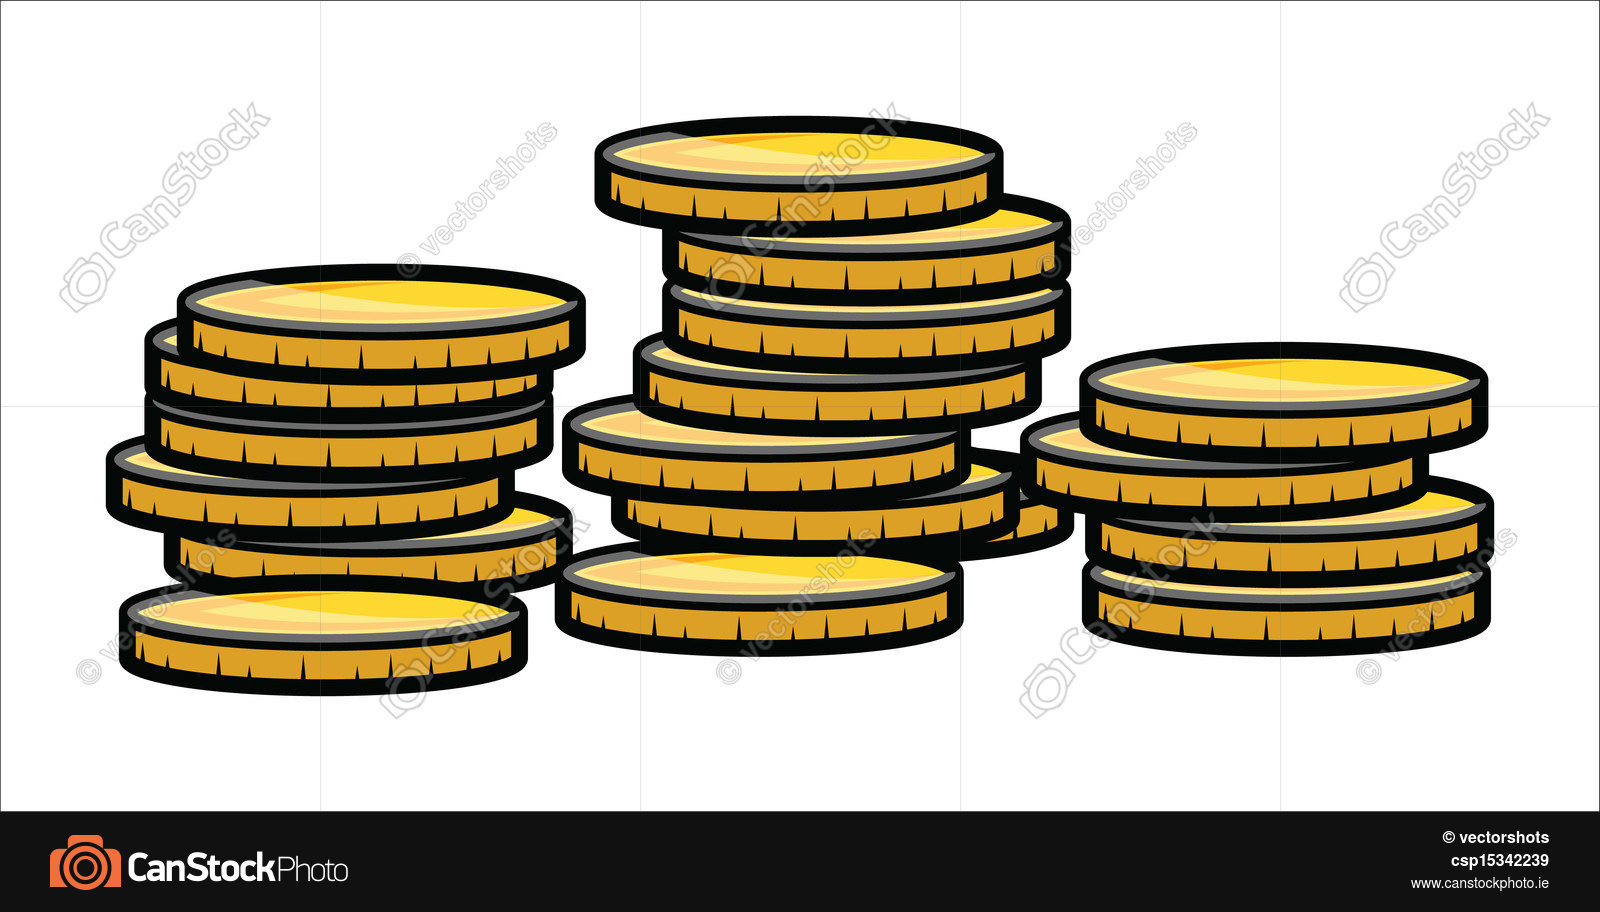 1600x912 Gold Coin Stack